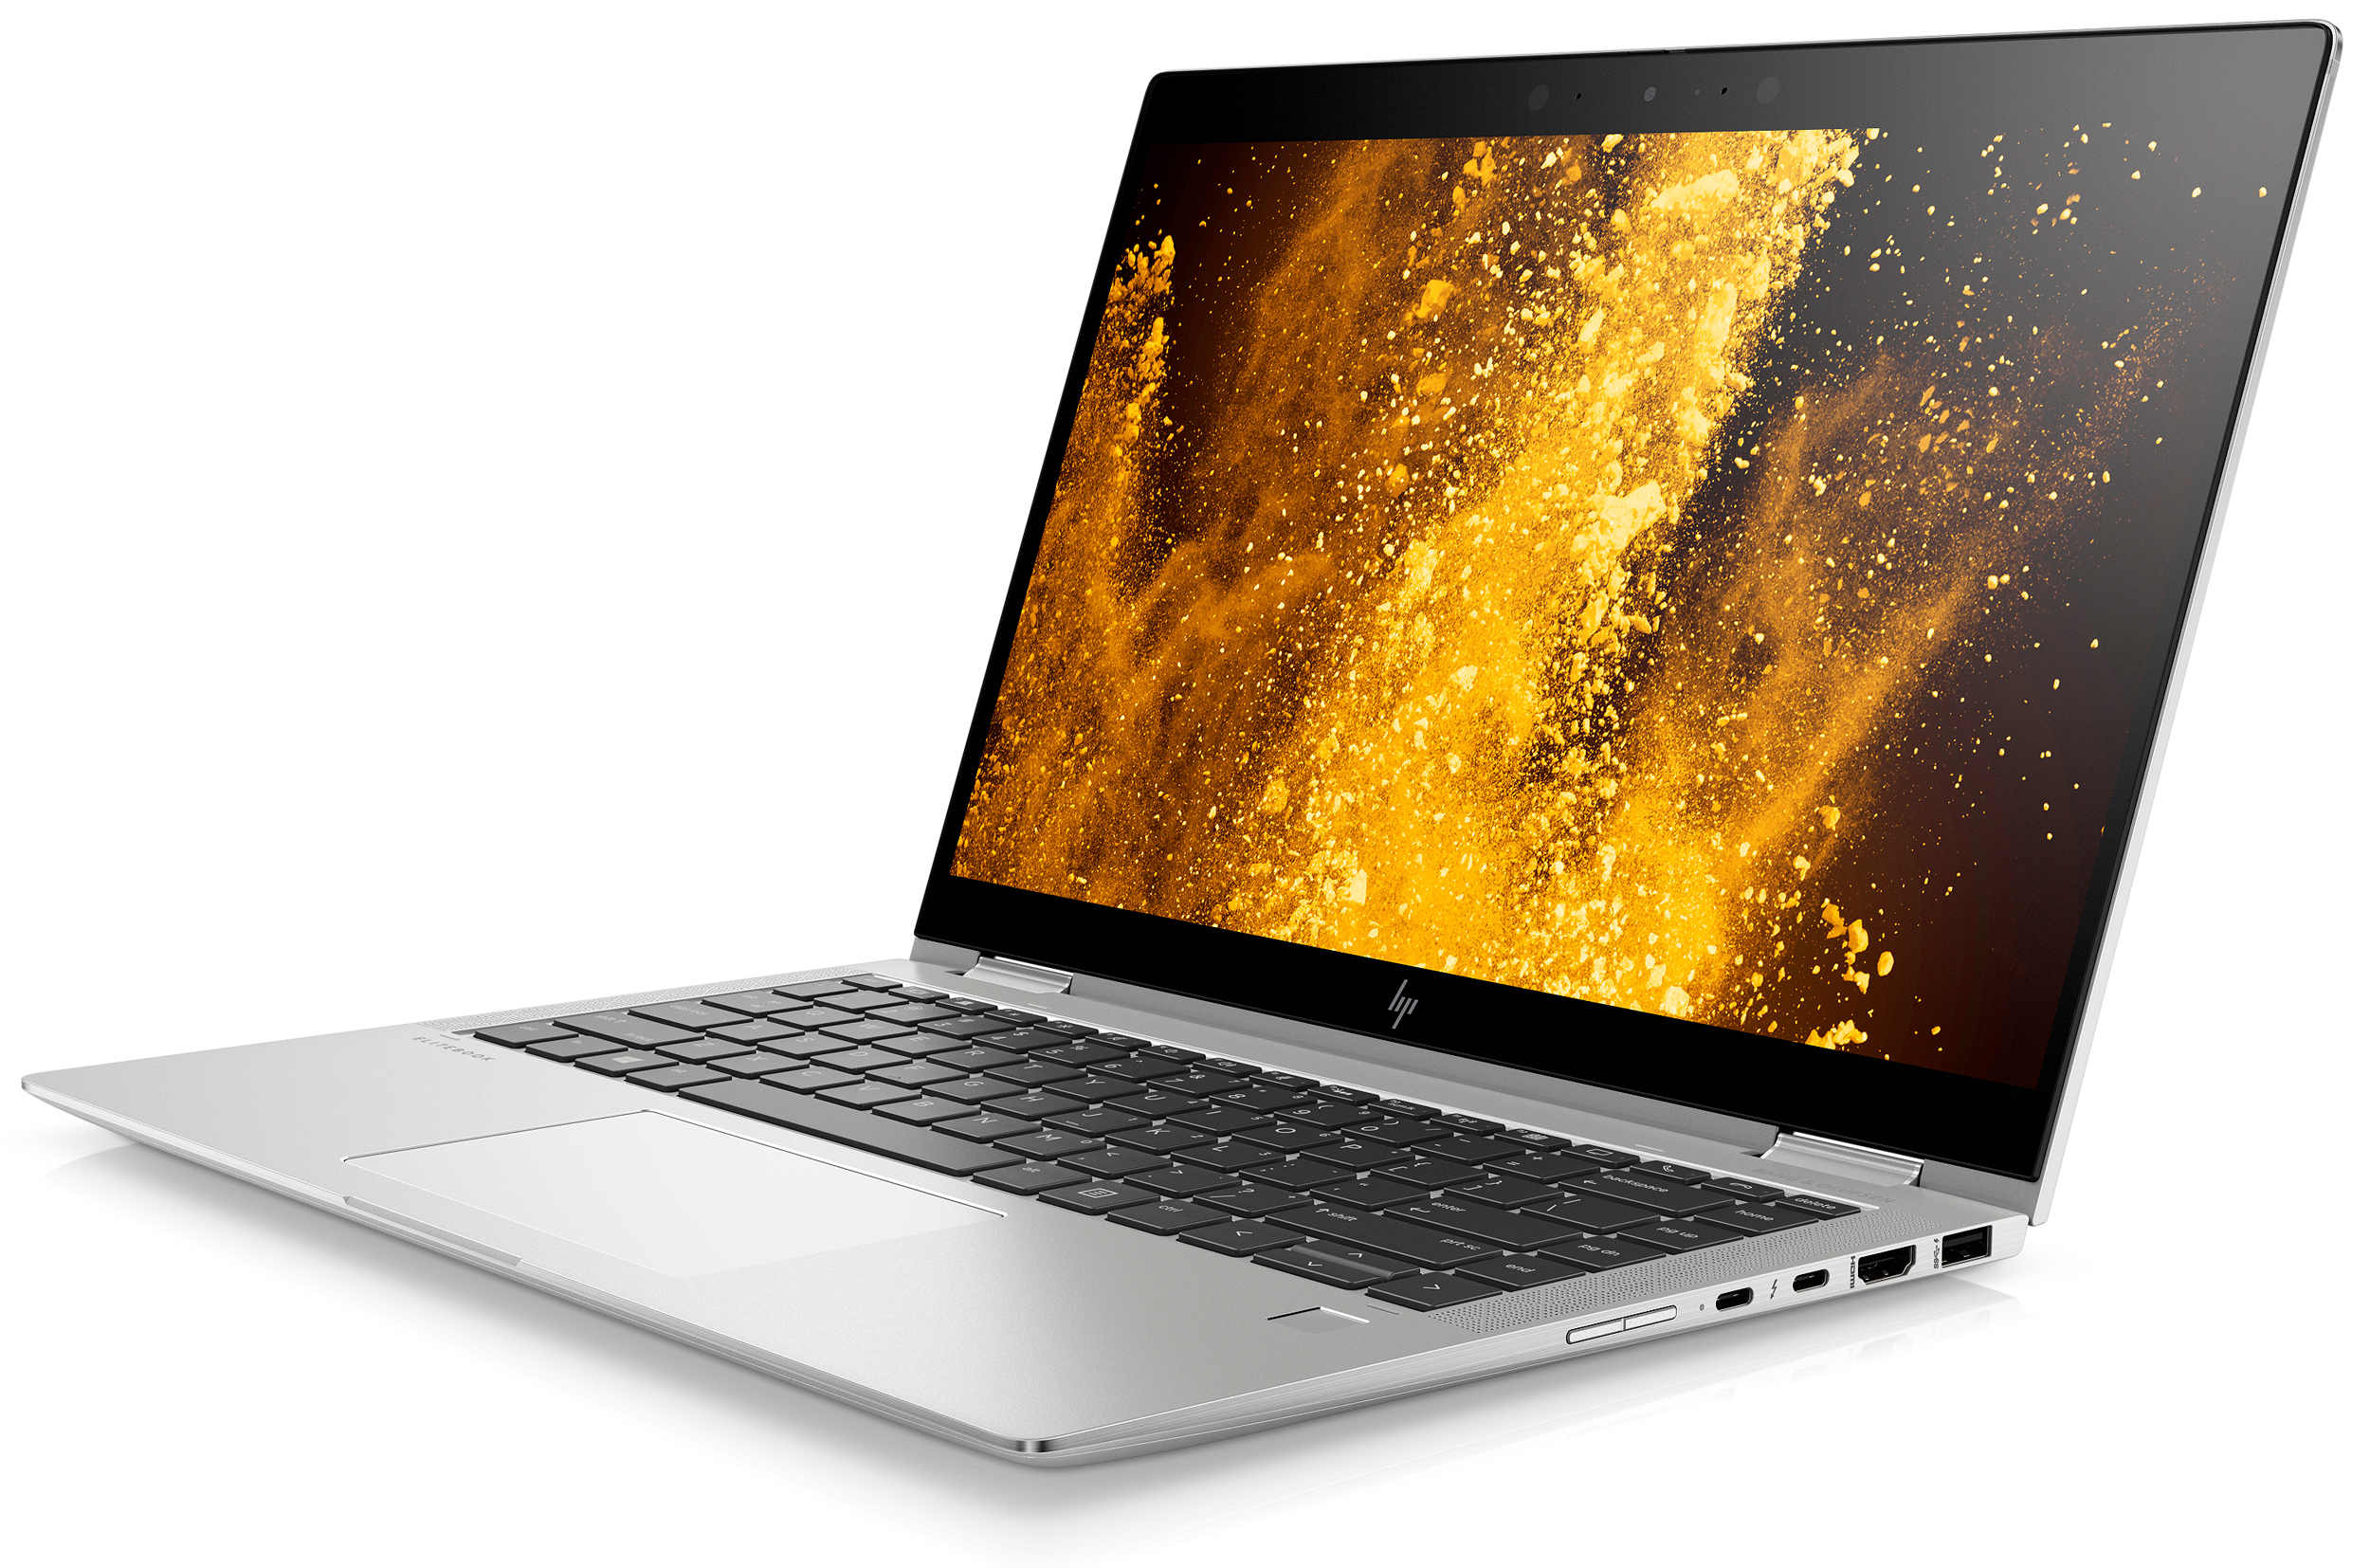 HP's EliteBook x360 1040 G6: 24 Hours of Battery Life, Core